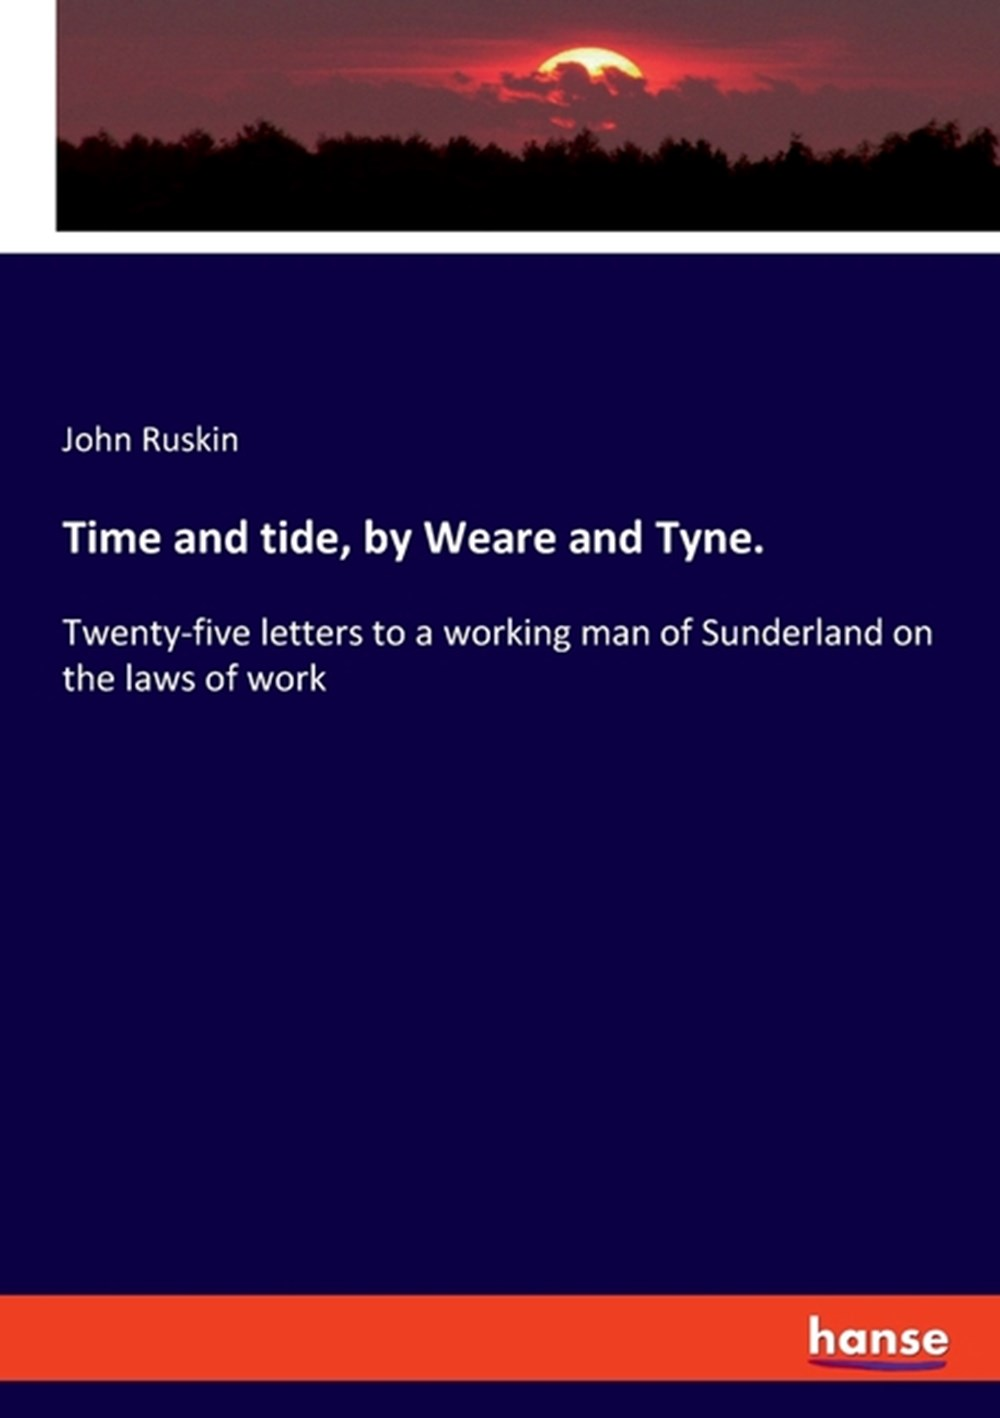 Time and tide, by Weare and Tyne. Twenty-five letters to a working man of Sunderland on the laws of